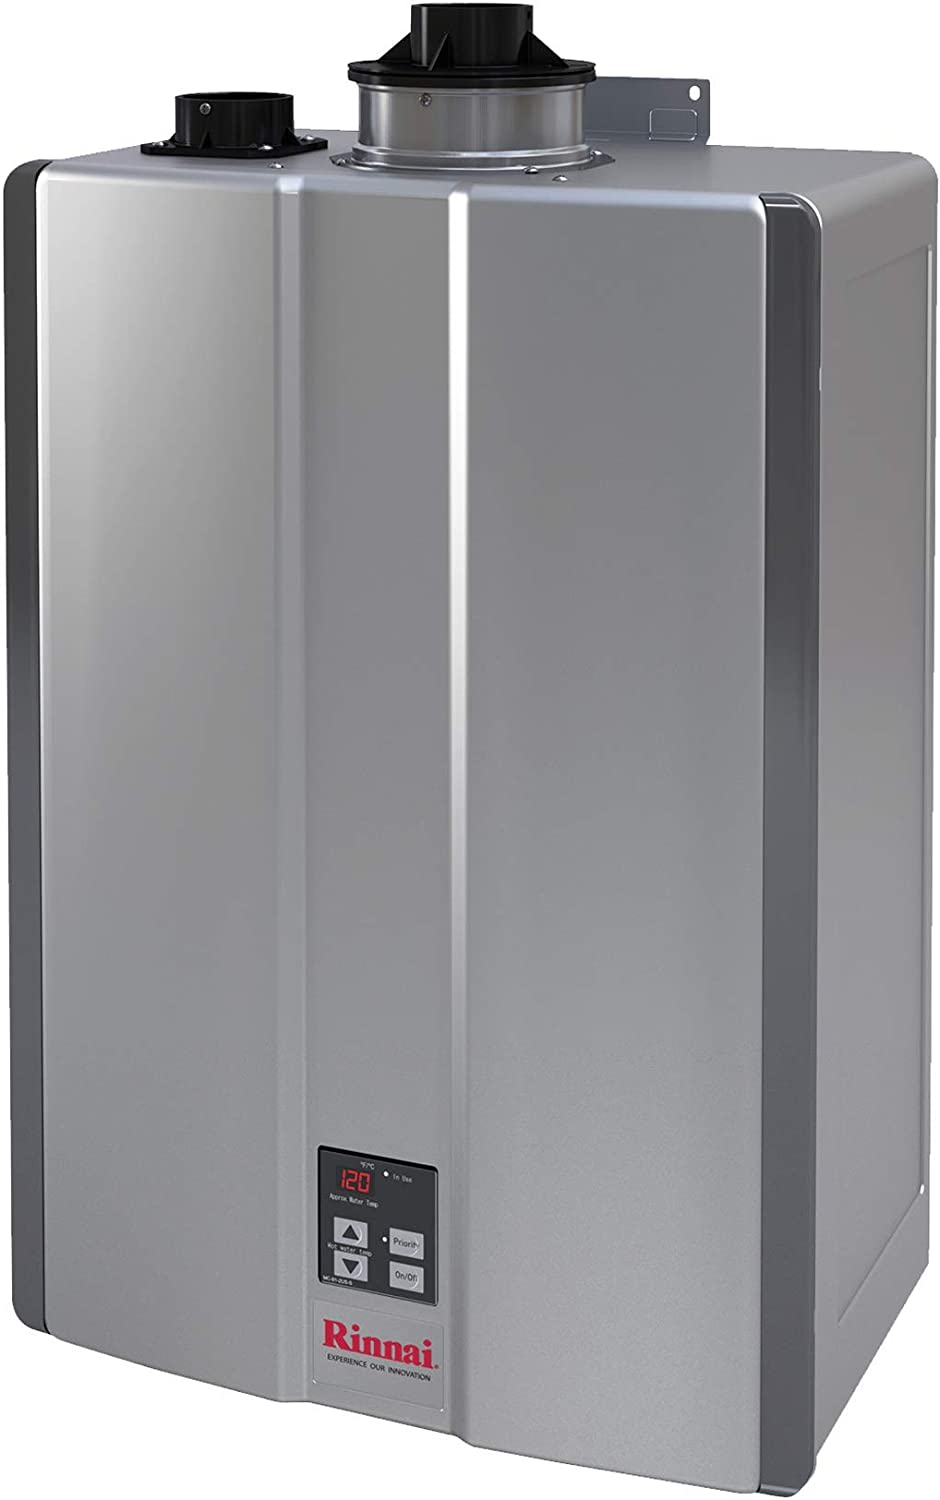 Rinnai RUR Series Sensei SE+ Tankless Hot Water Heater: Indoor Installation